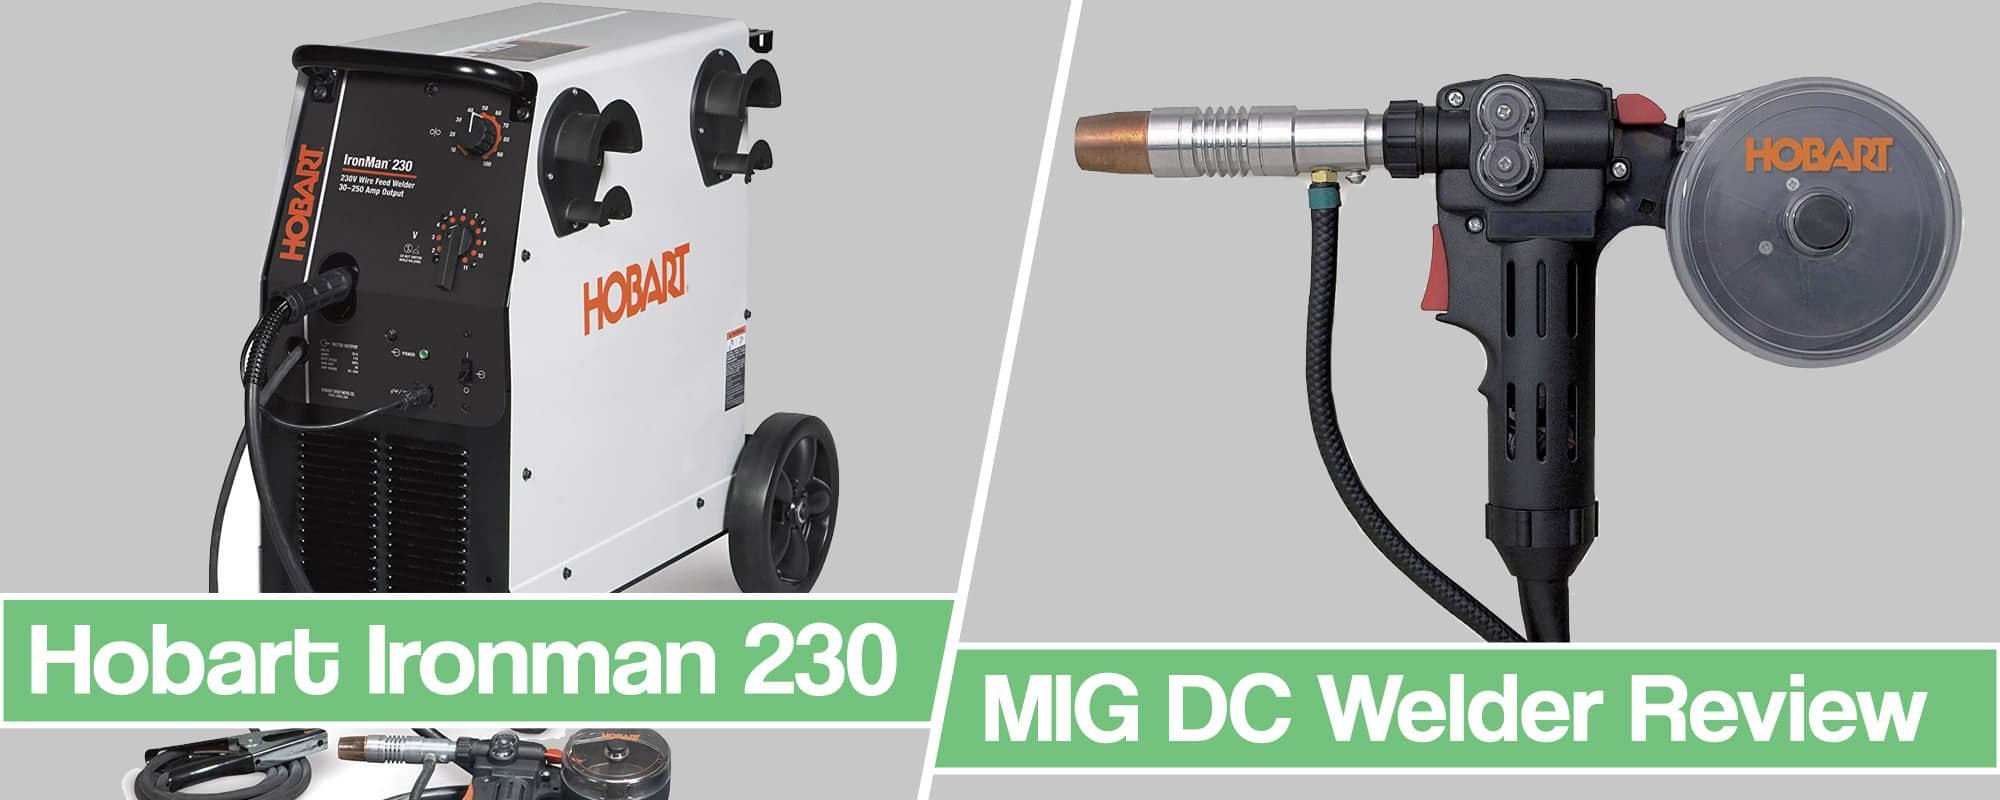 Feature image for Hobart Ironman 230 MIG Welder Review article